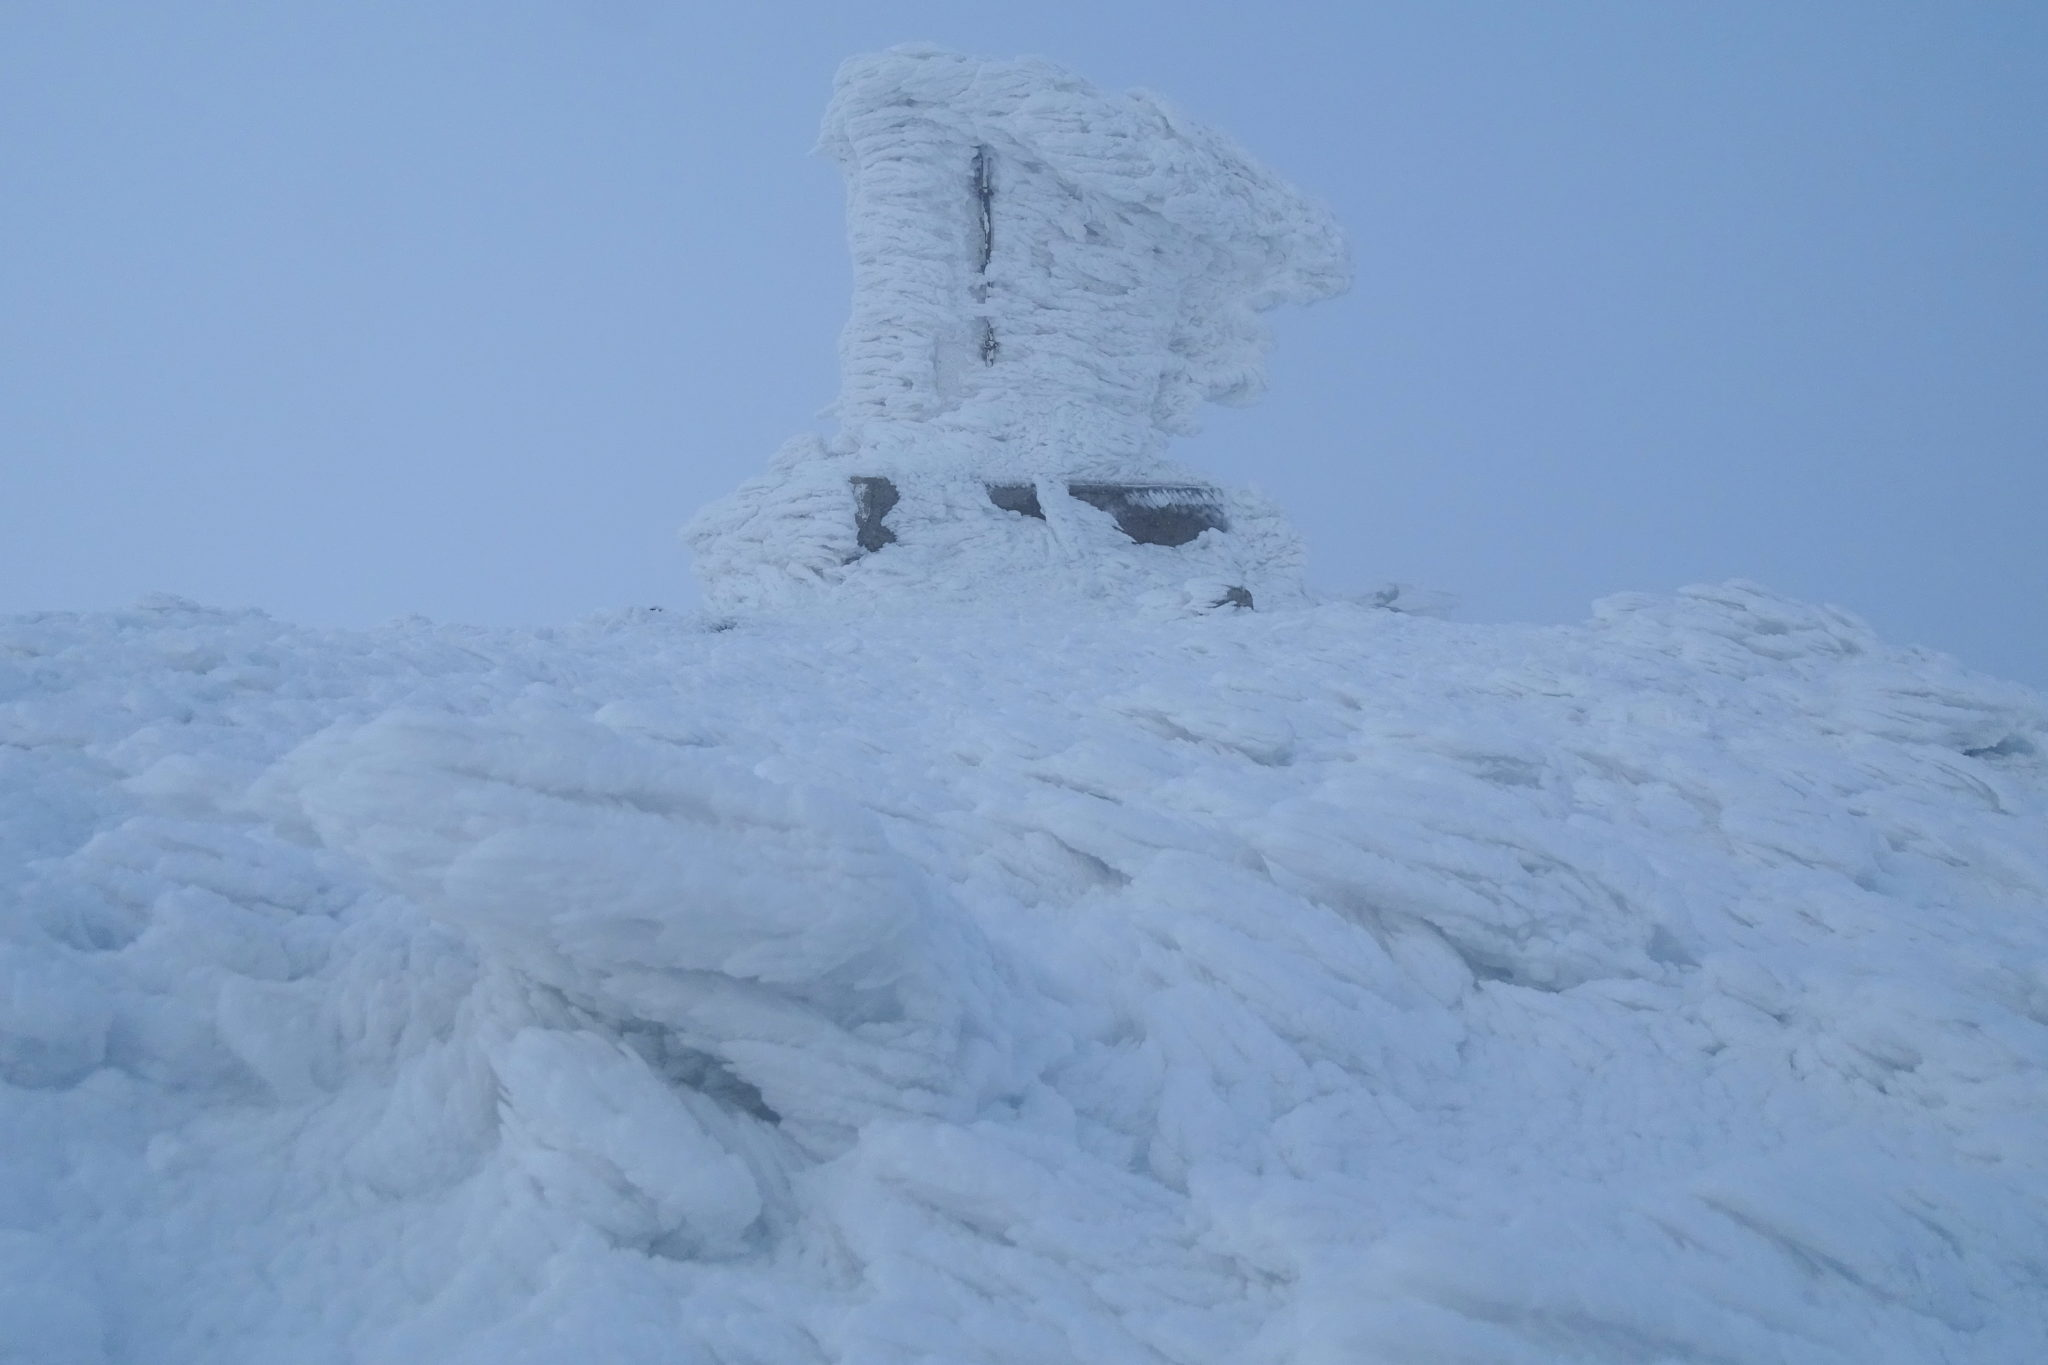 The very top of Snežnik in winter, frozen